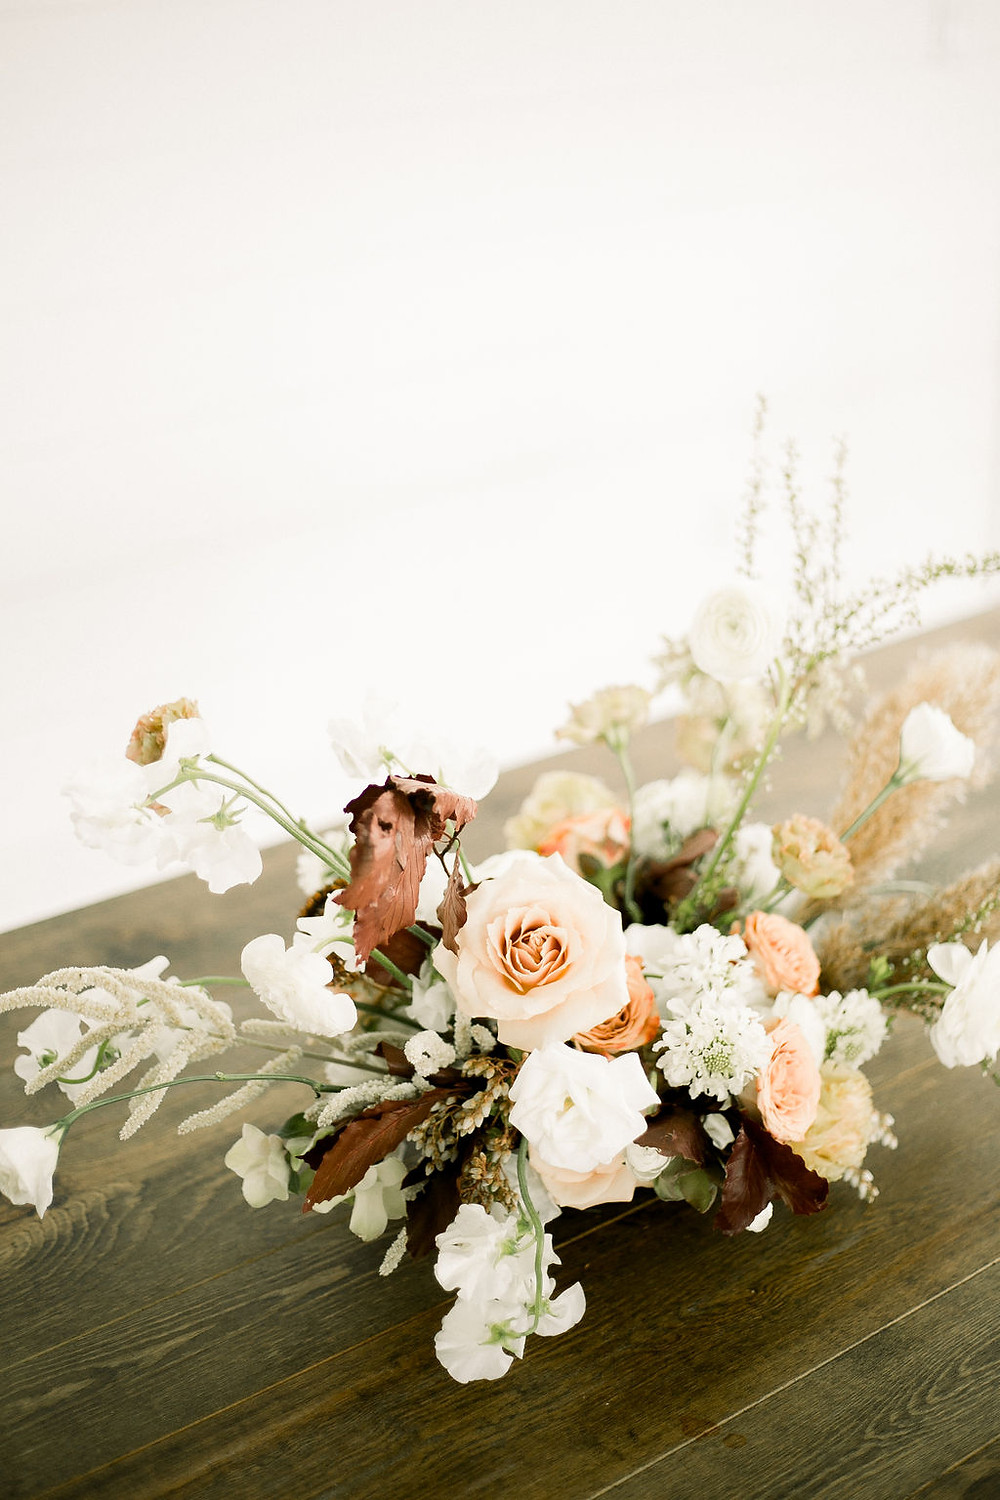 Studio Bloom Iowa minimalist farm centerpiece in neutral peach and brown with roses, scabiosa, sweet pea, and pampas grass